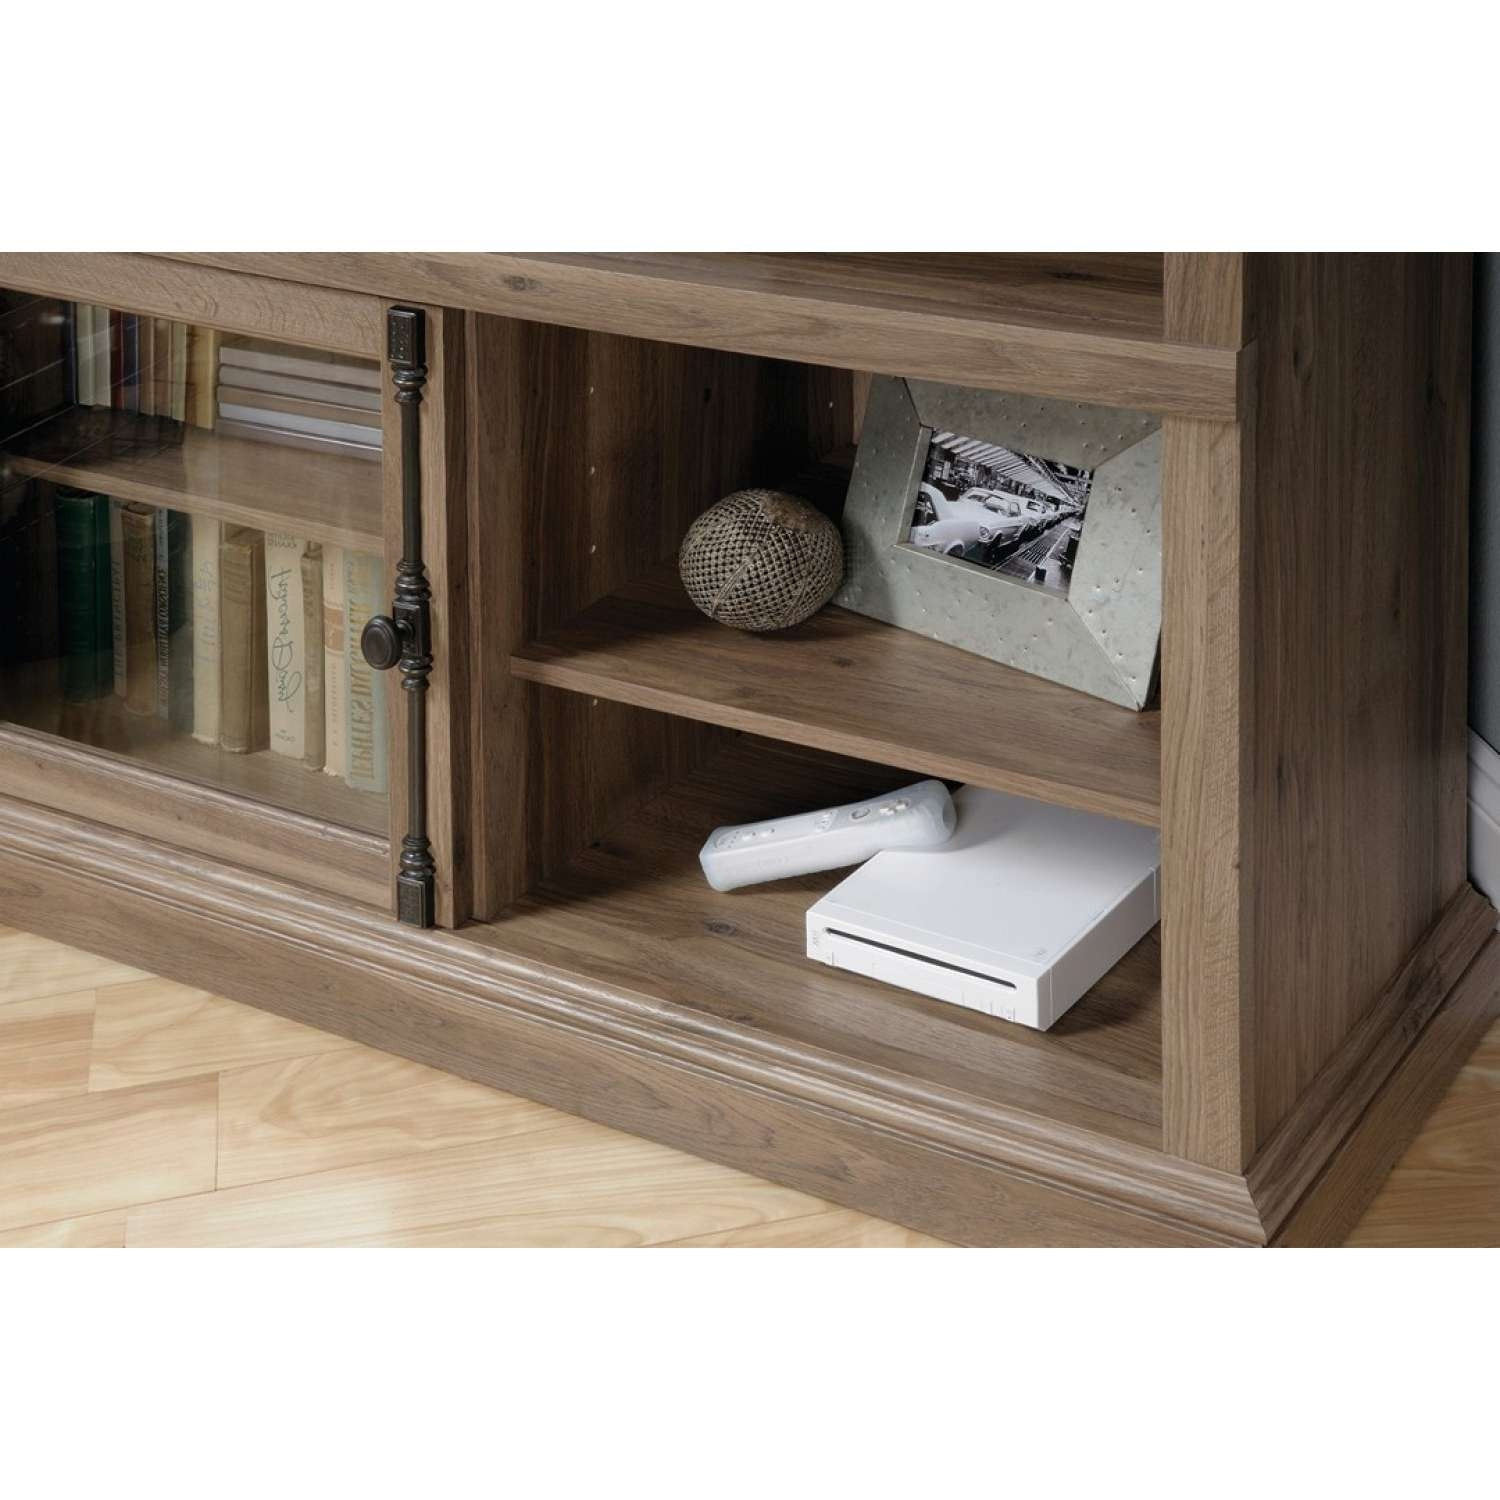 Corner Sofas Gumtree Liverpool: 15 Best Collection Of Oak Effect Corner Tv Stands